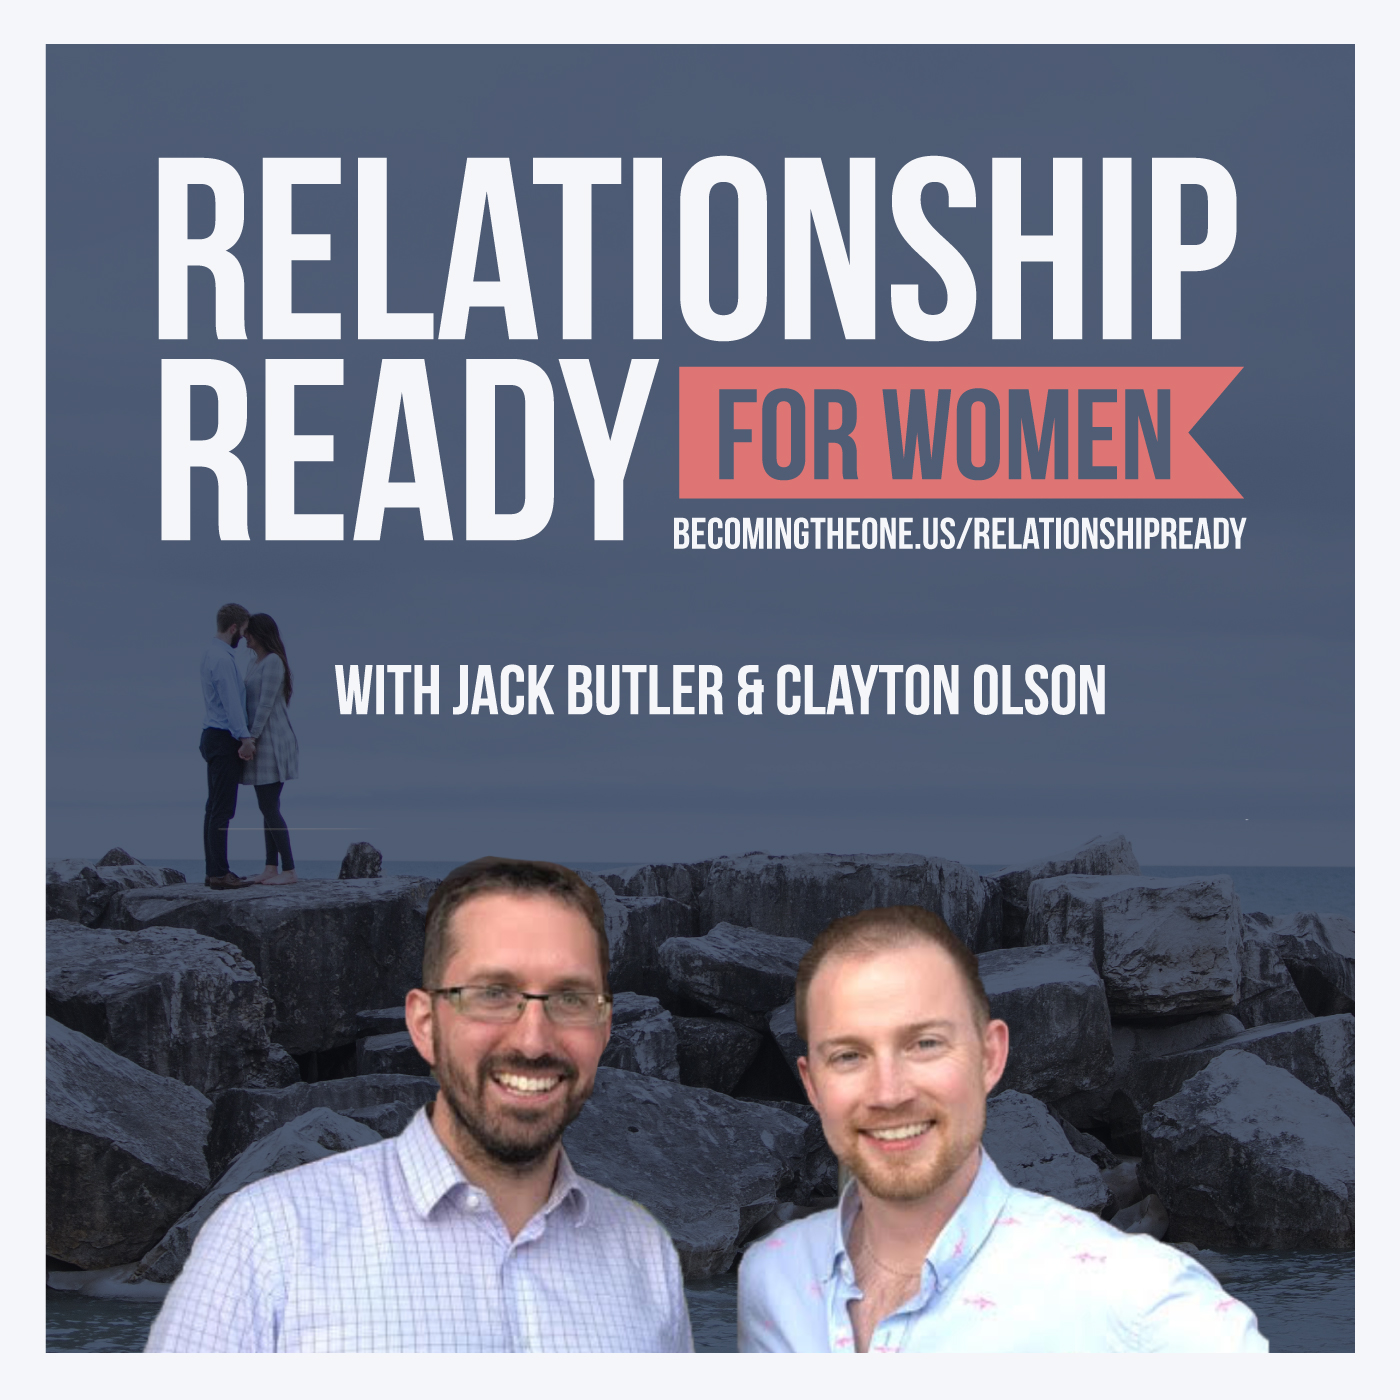 Relationship Ready - Who Is The Real Jack Butler?